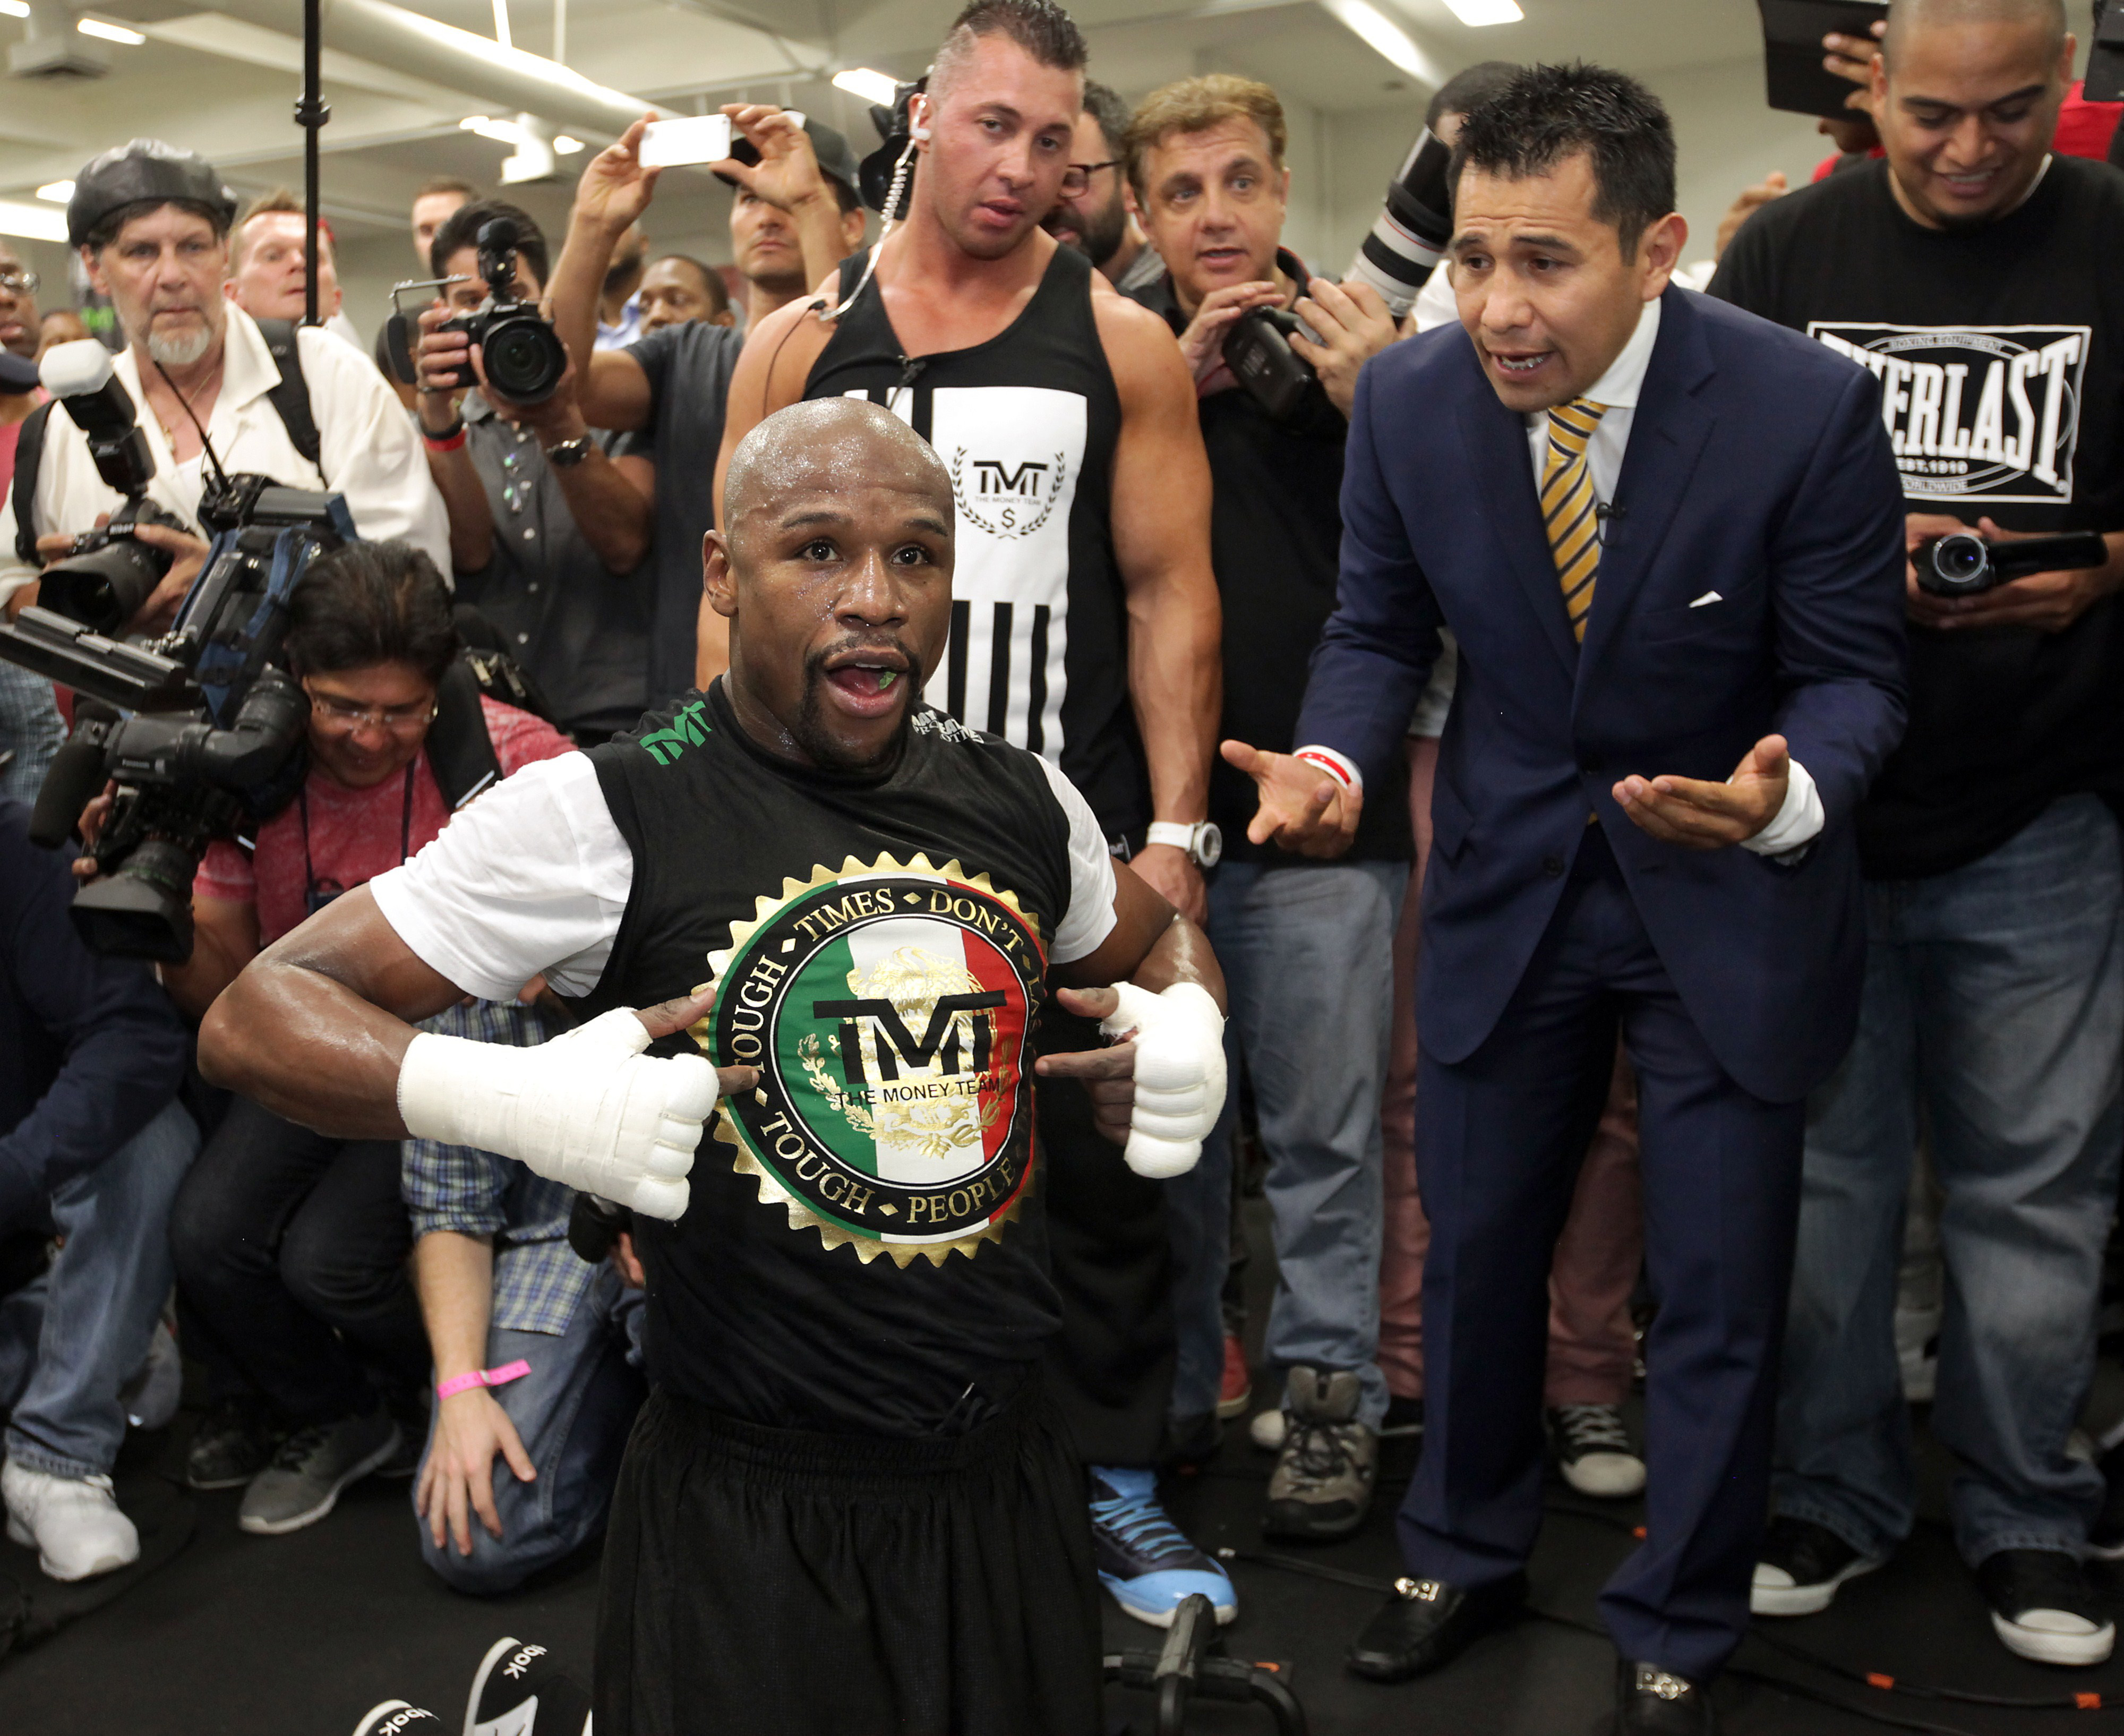 WBC/WBA welterweight champion Floyd Mayweather Jr. works out at the Mayweather Boxing Club on April 14, 2015 in Las Vegas, Nevada.